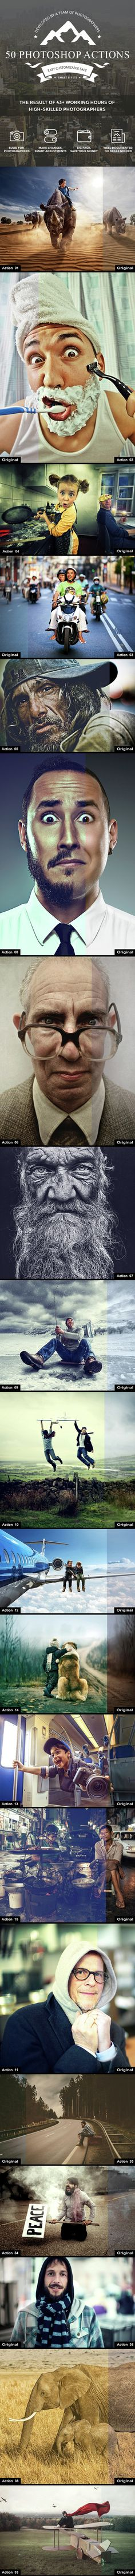 50 Photo Effect Photoshop Actions. Download here: http://graphicriver.net/item/50-photoshop-actions/14933702?ref=ksioks